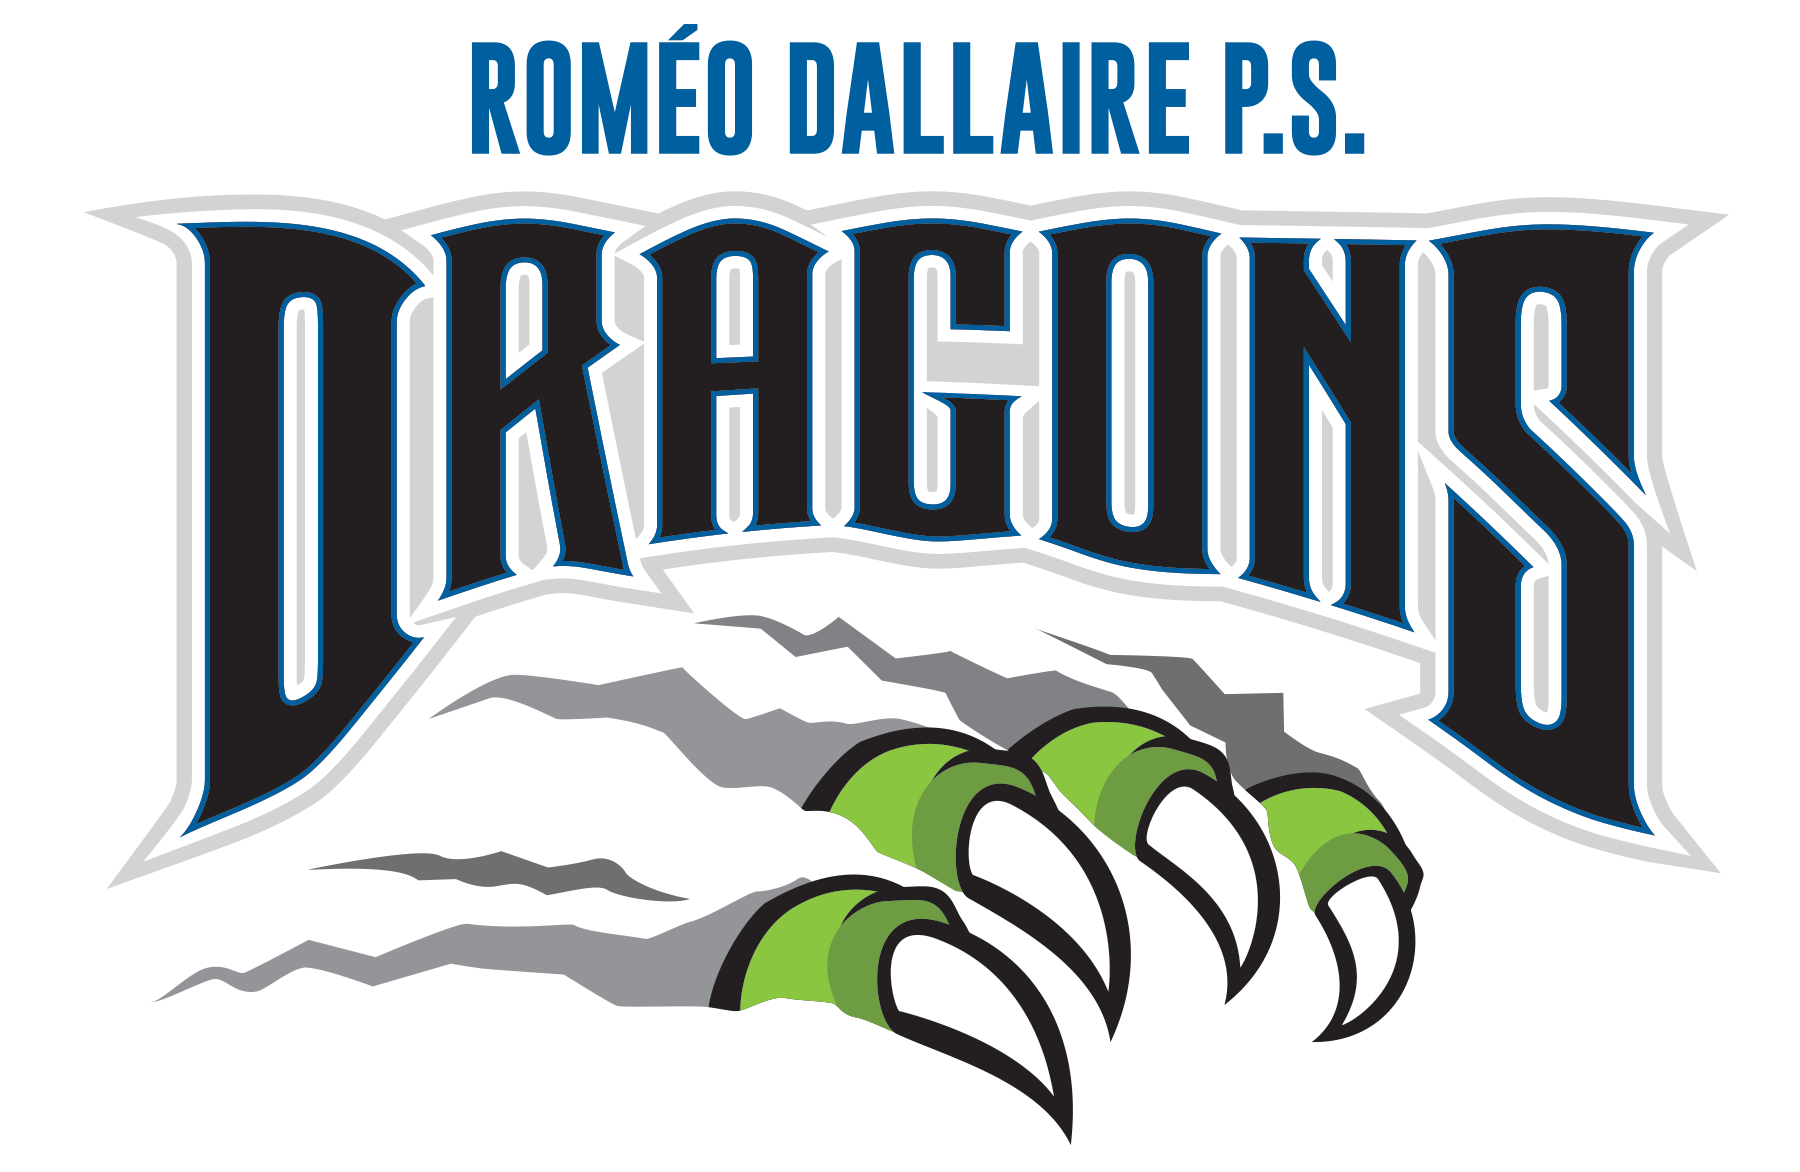 Roméo Dallaire Public School logo